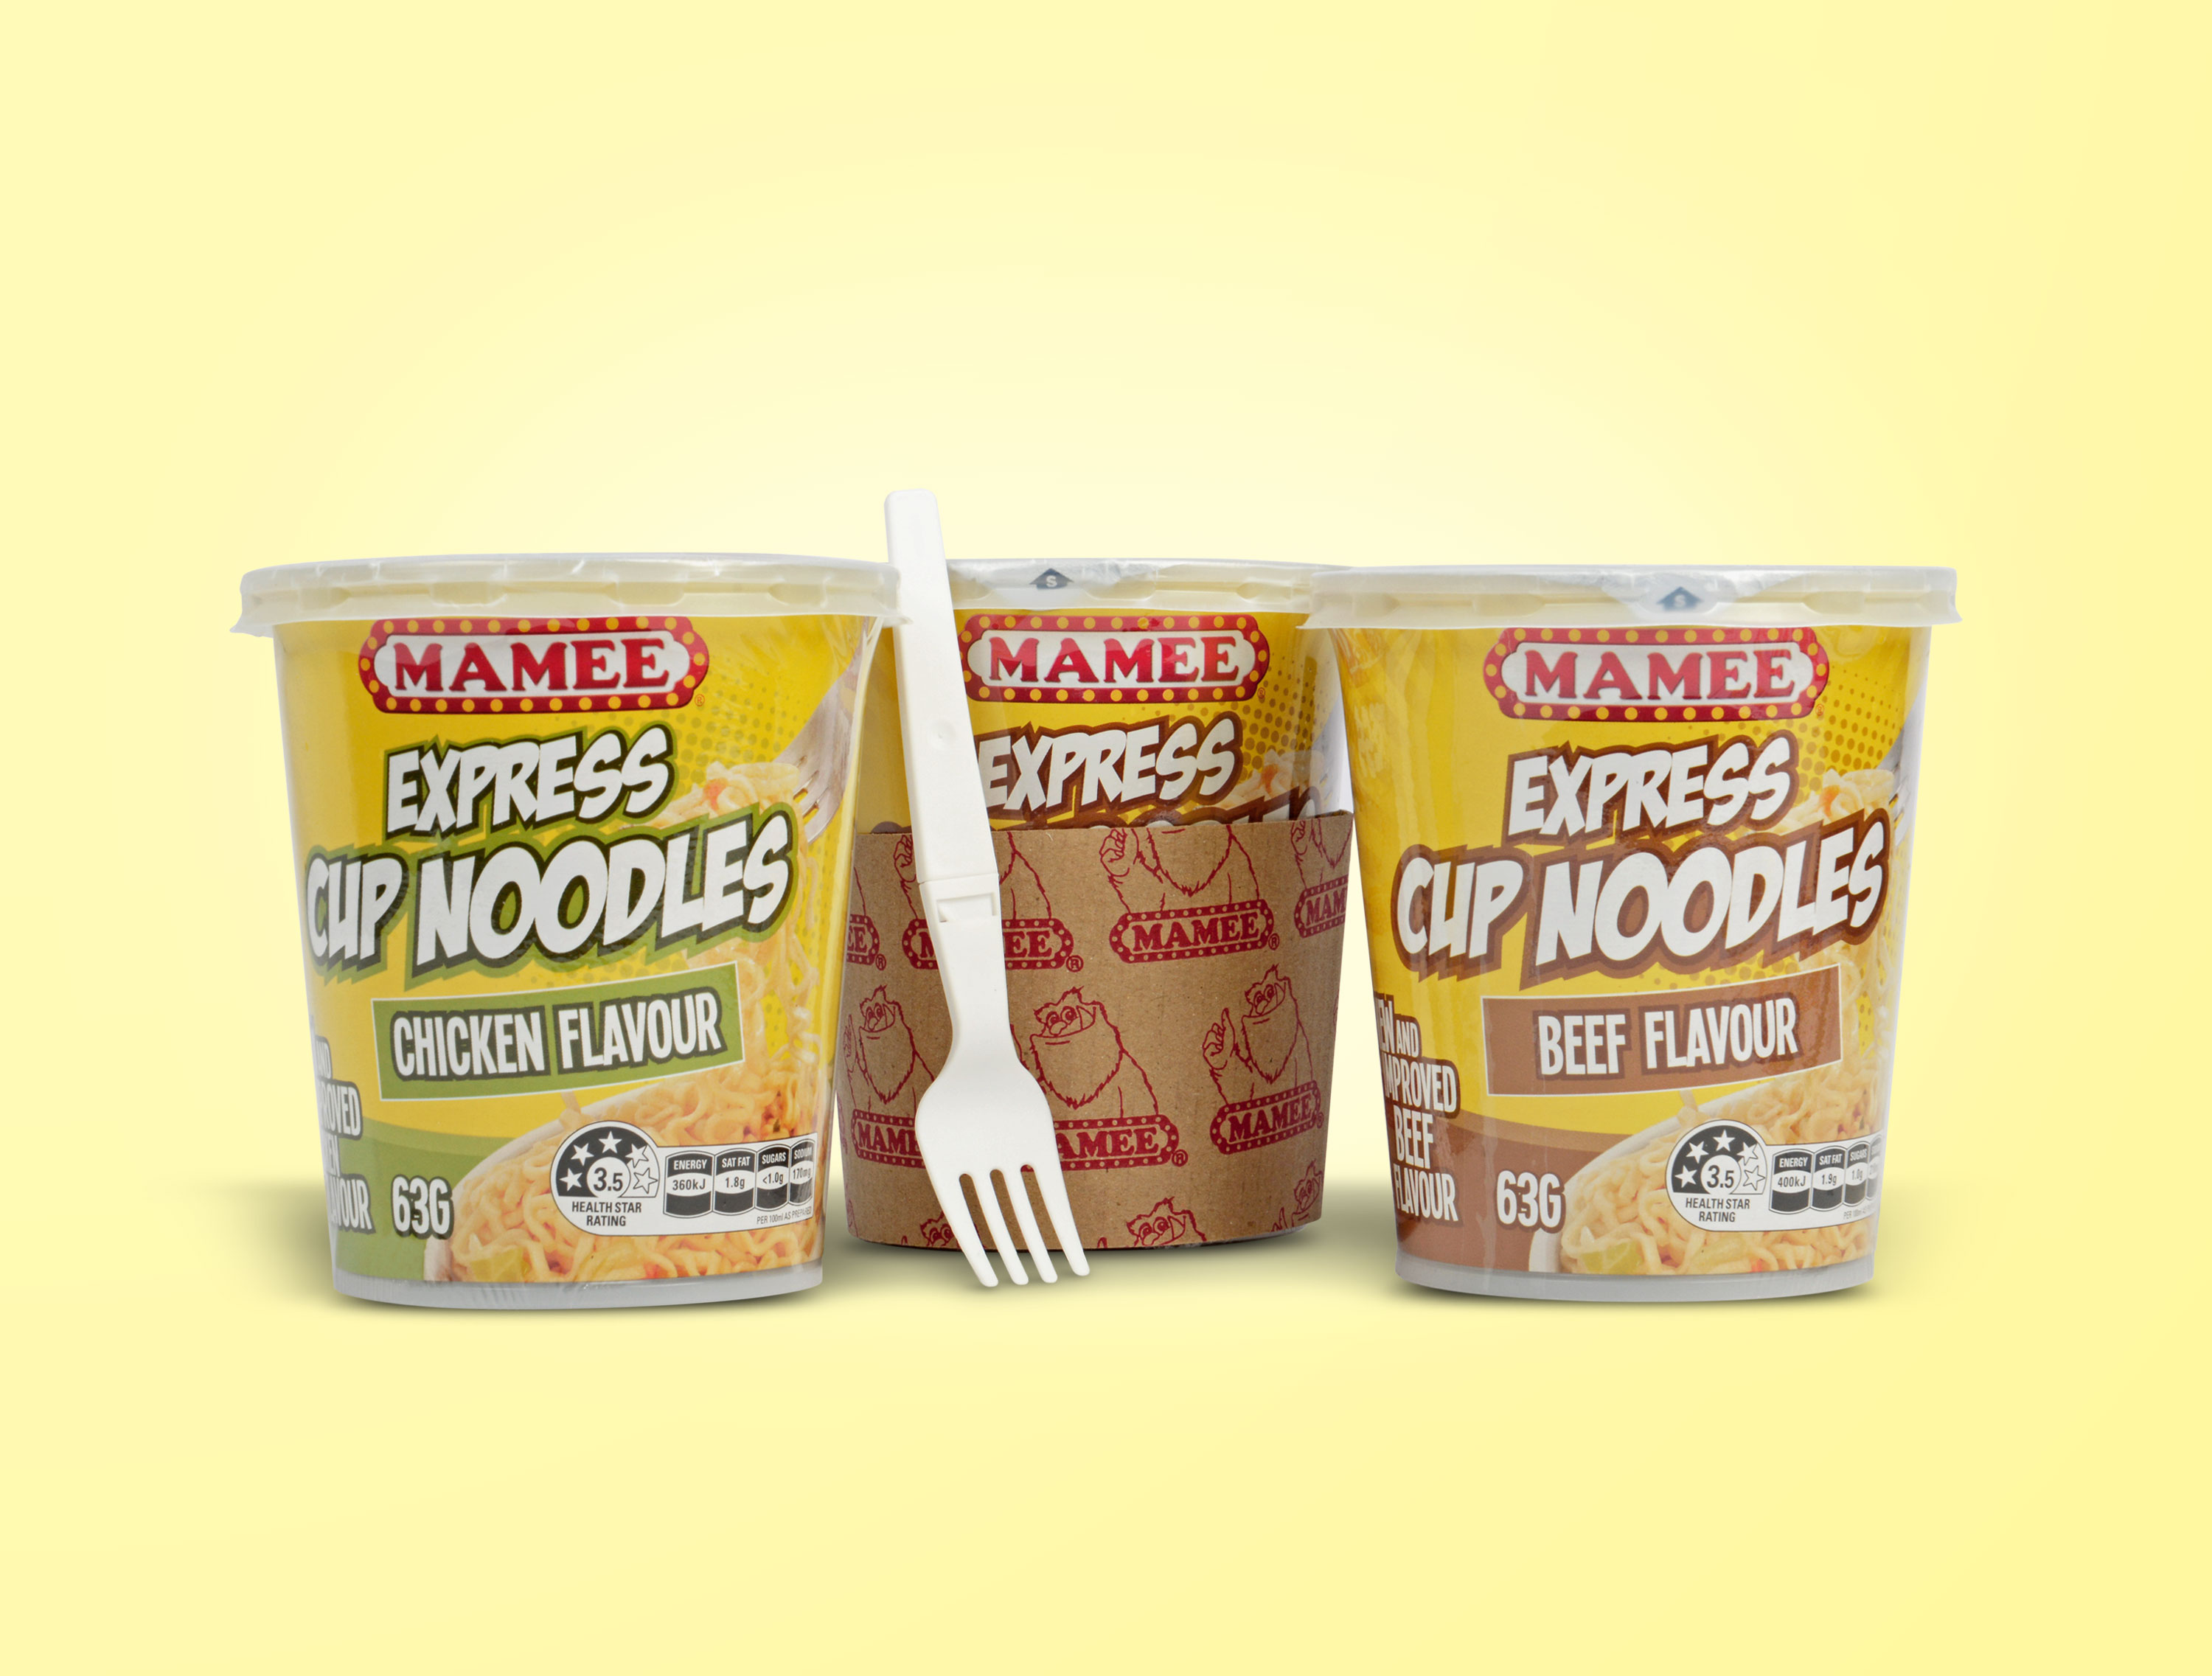 Mamee Express Cup Noodles Packaging Design